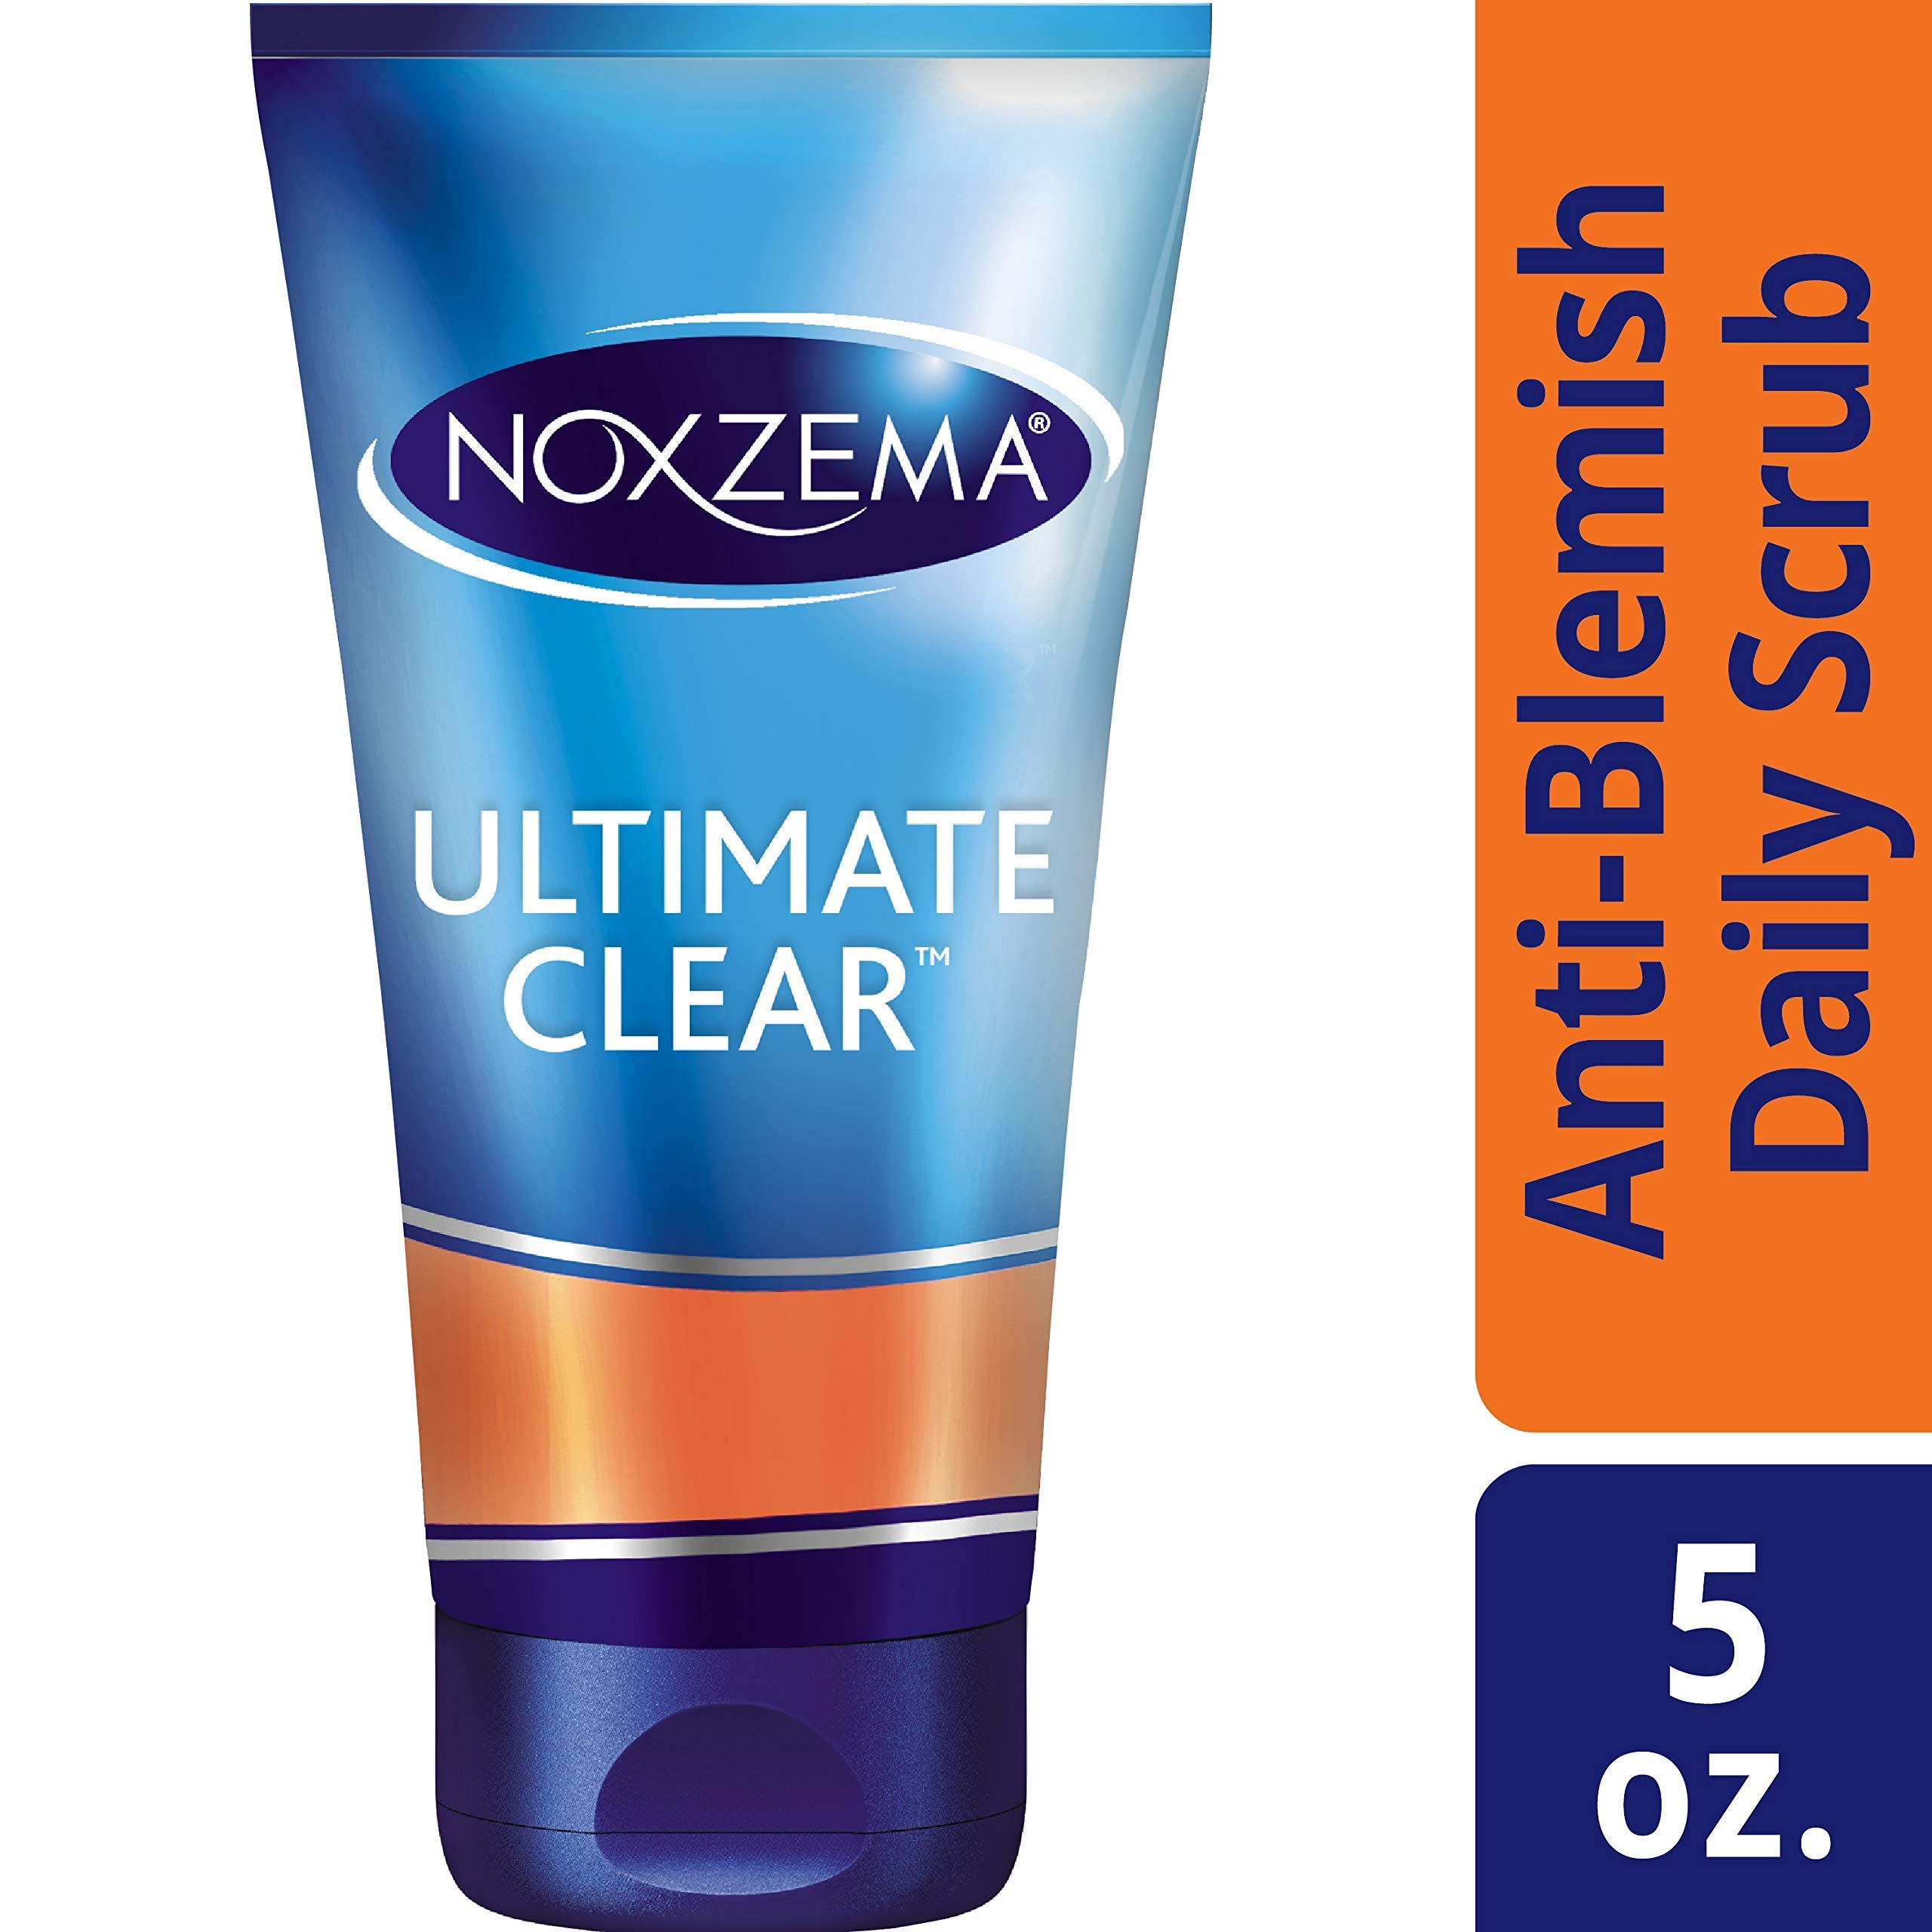 Noxzema Ultimate Clear Anti-Blemish Daily Deep Pore Face Scrub 5 ounce, 6 Count by Noxzema